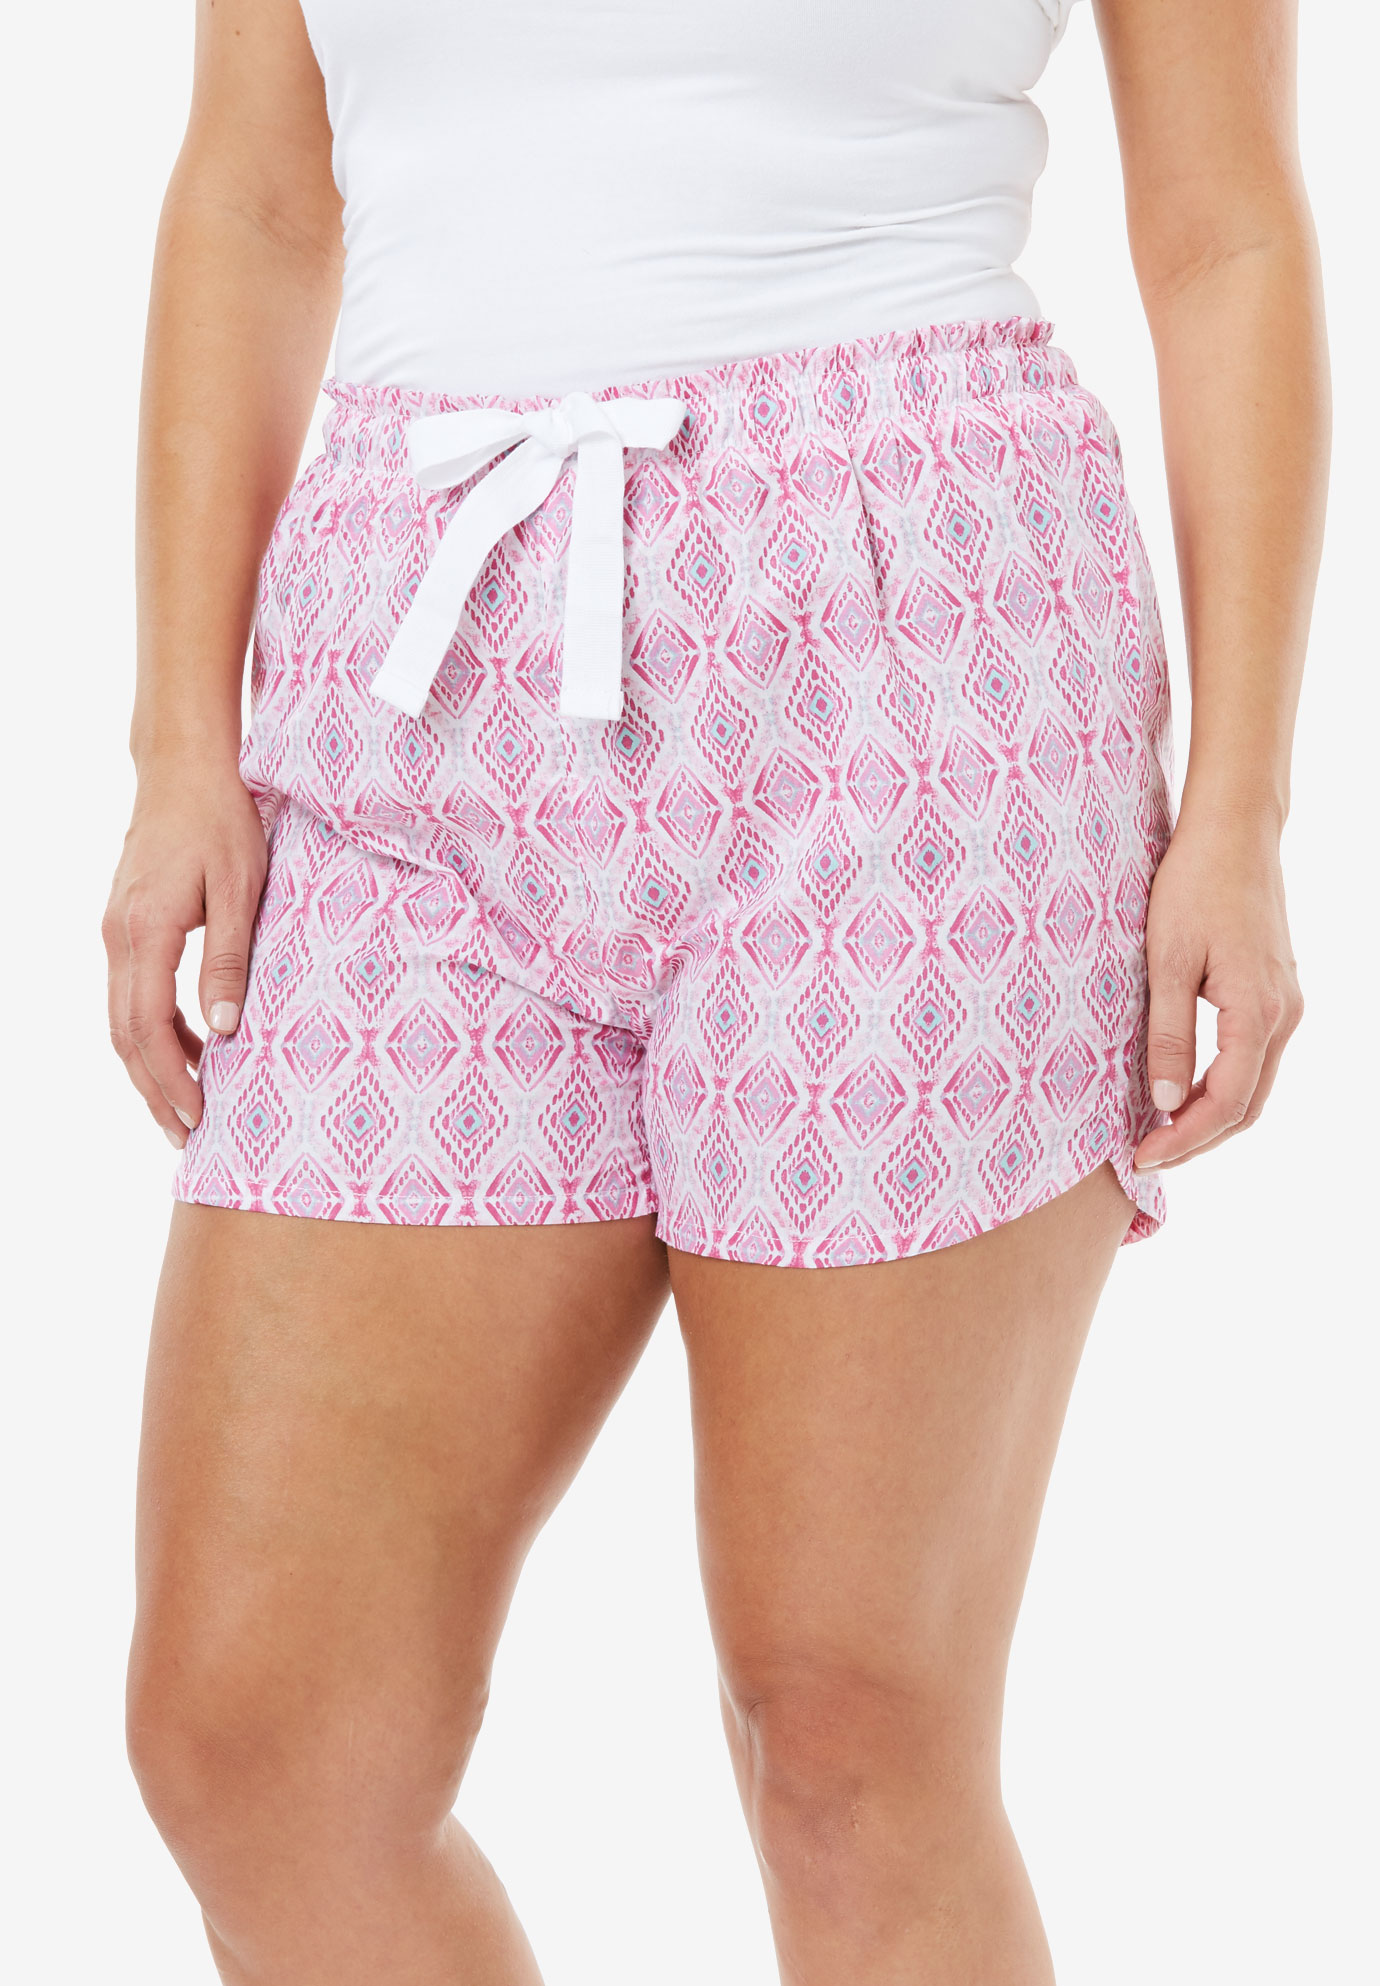 Cotton Print Pajama Short by Dreams & Co.®, PINK DIAMOND, hi-res